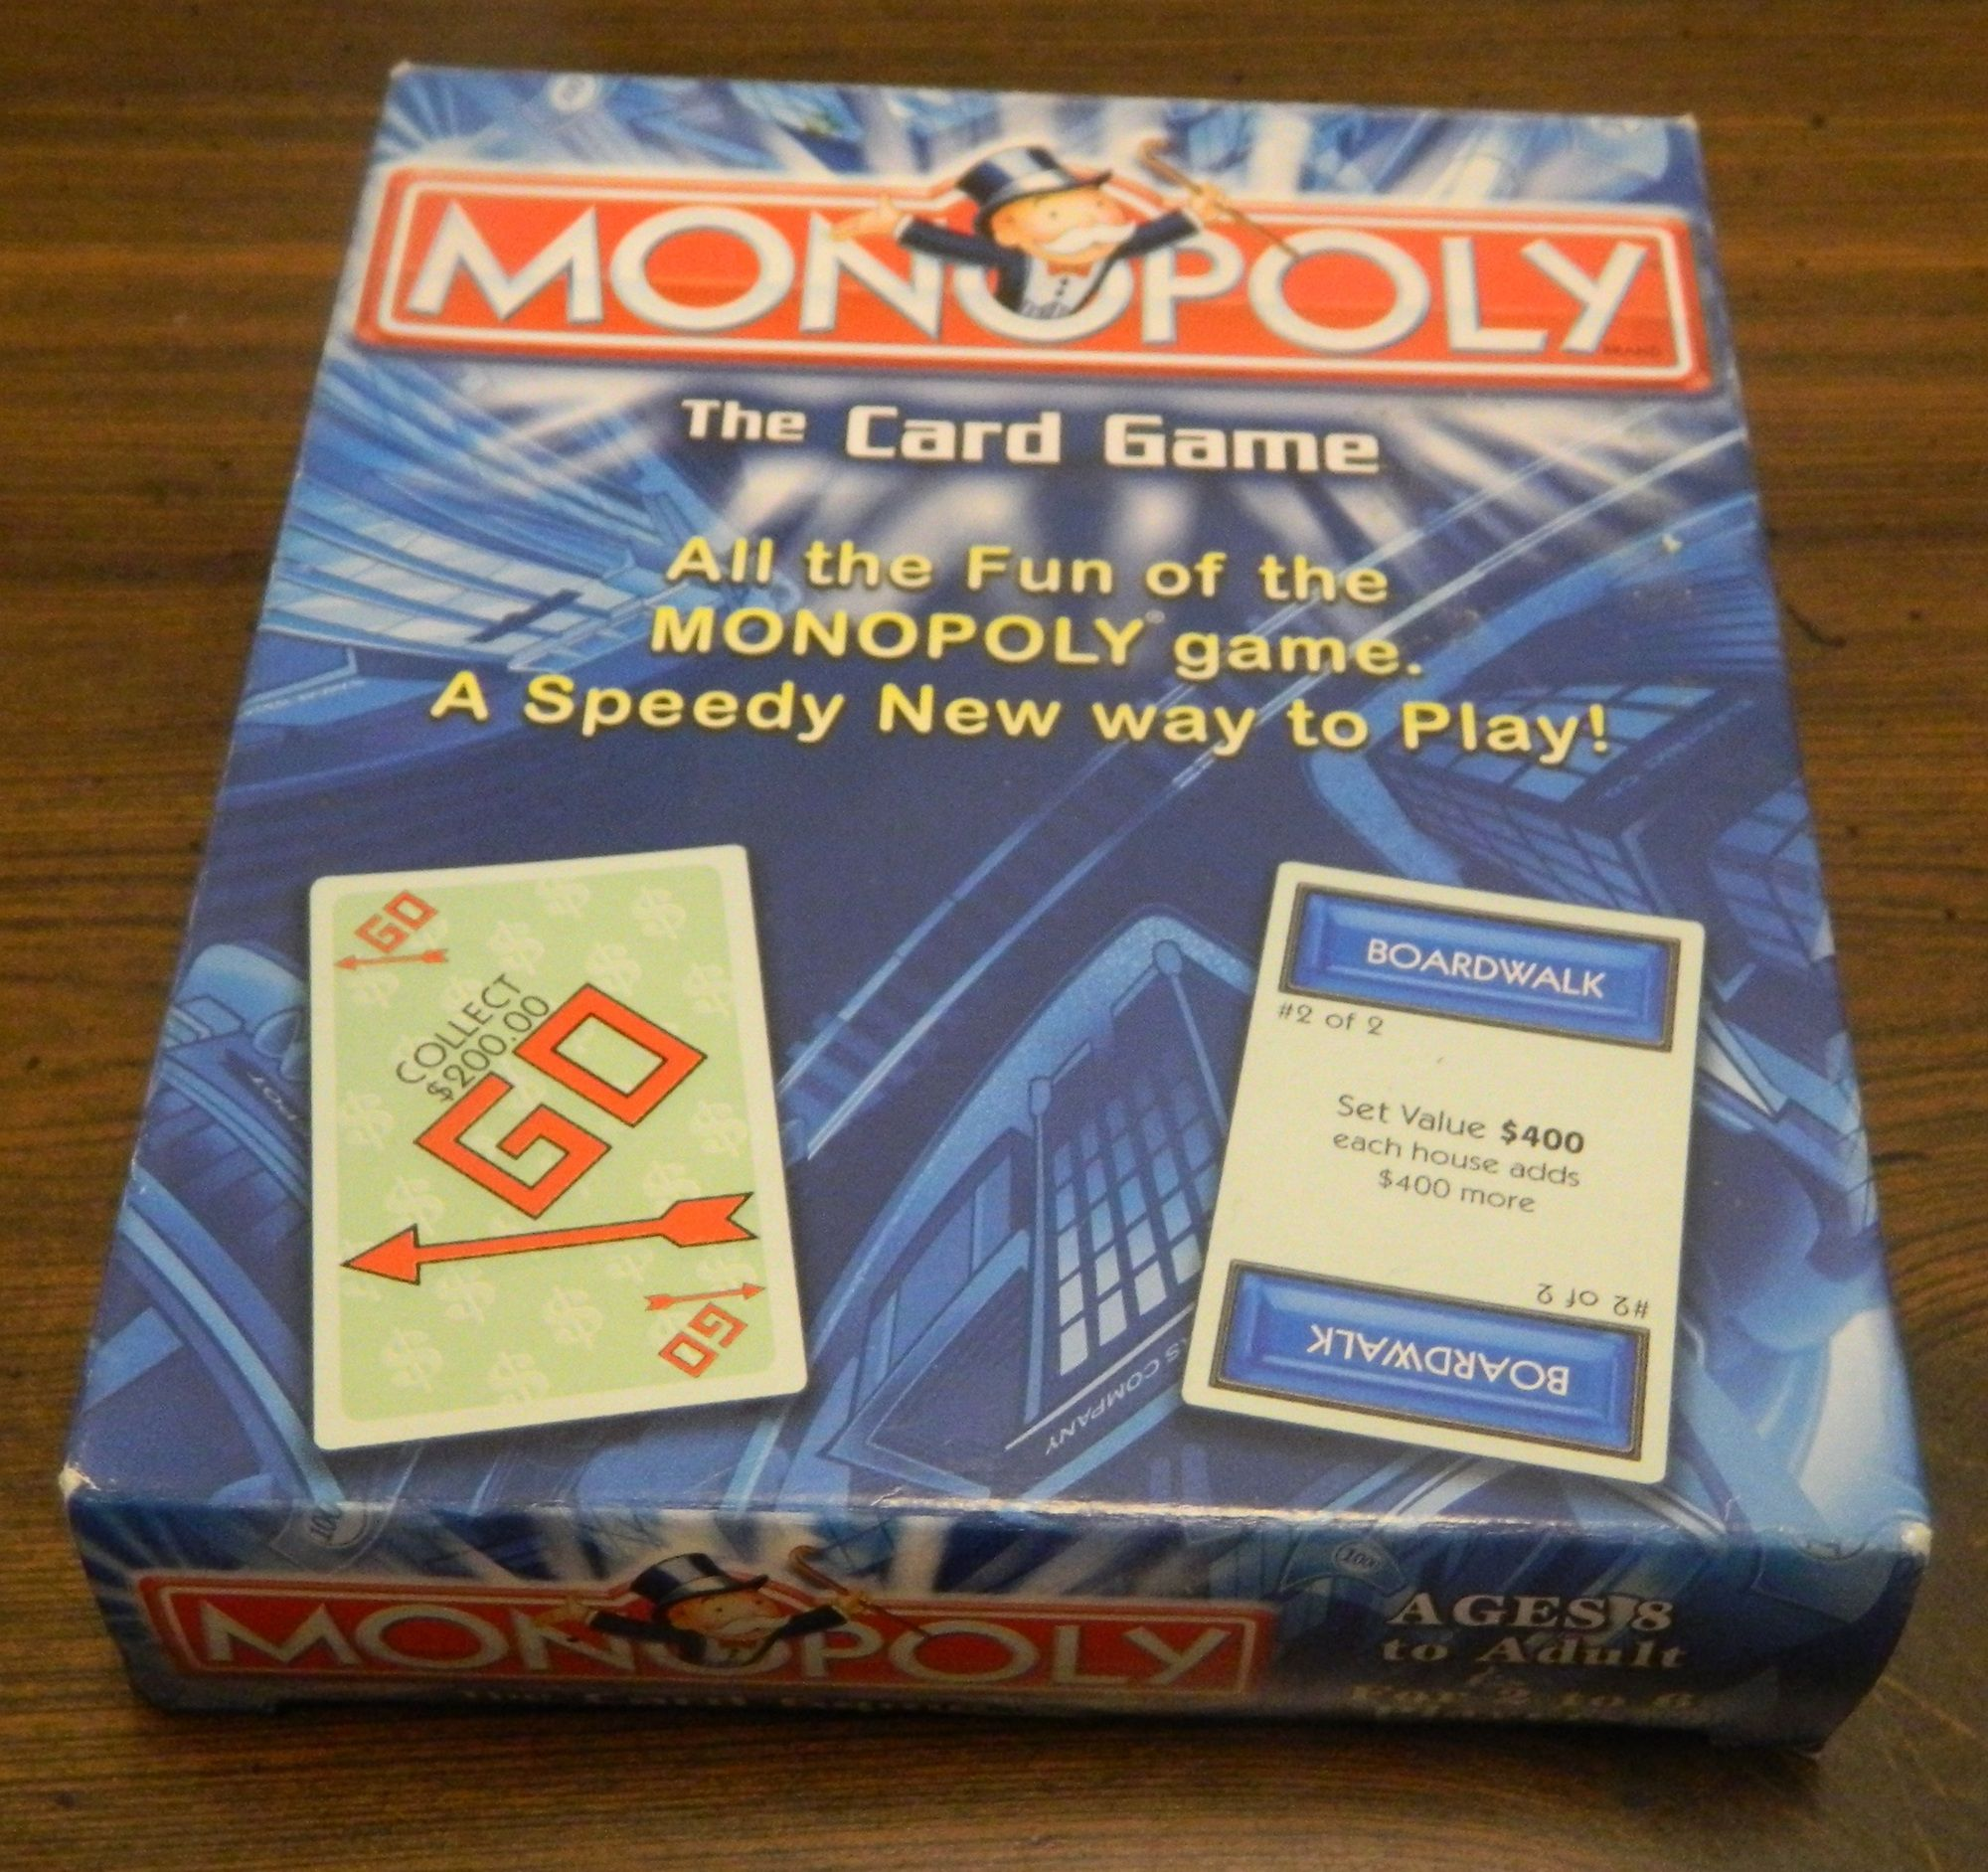 Box for Monopoly Card Game